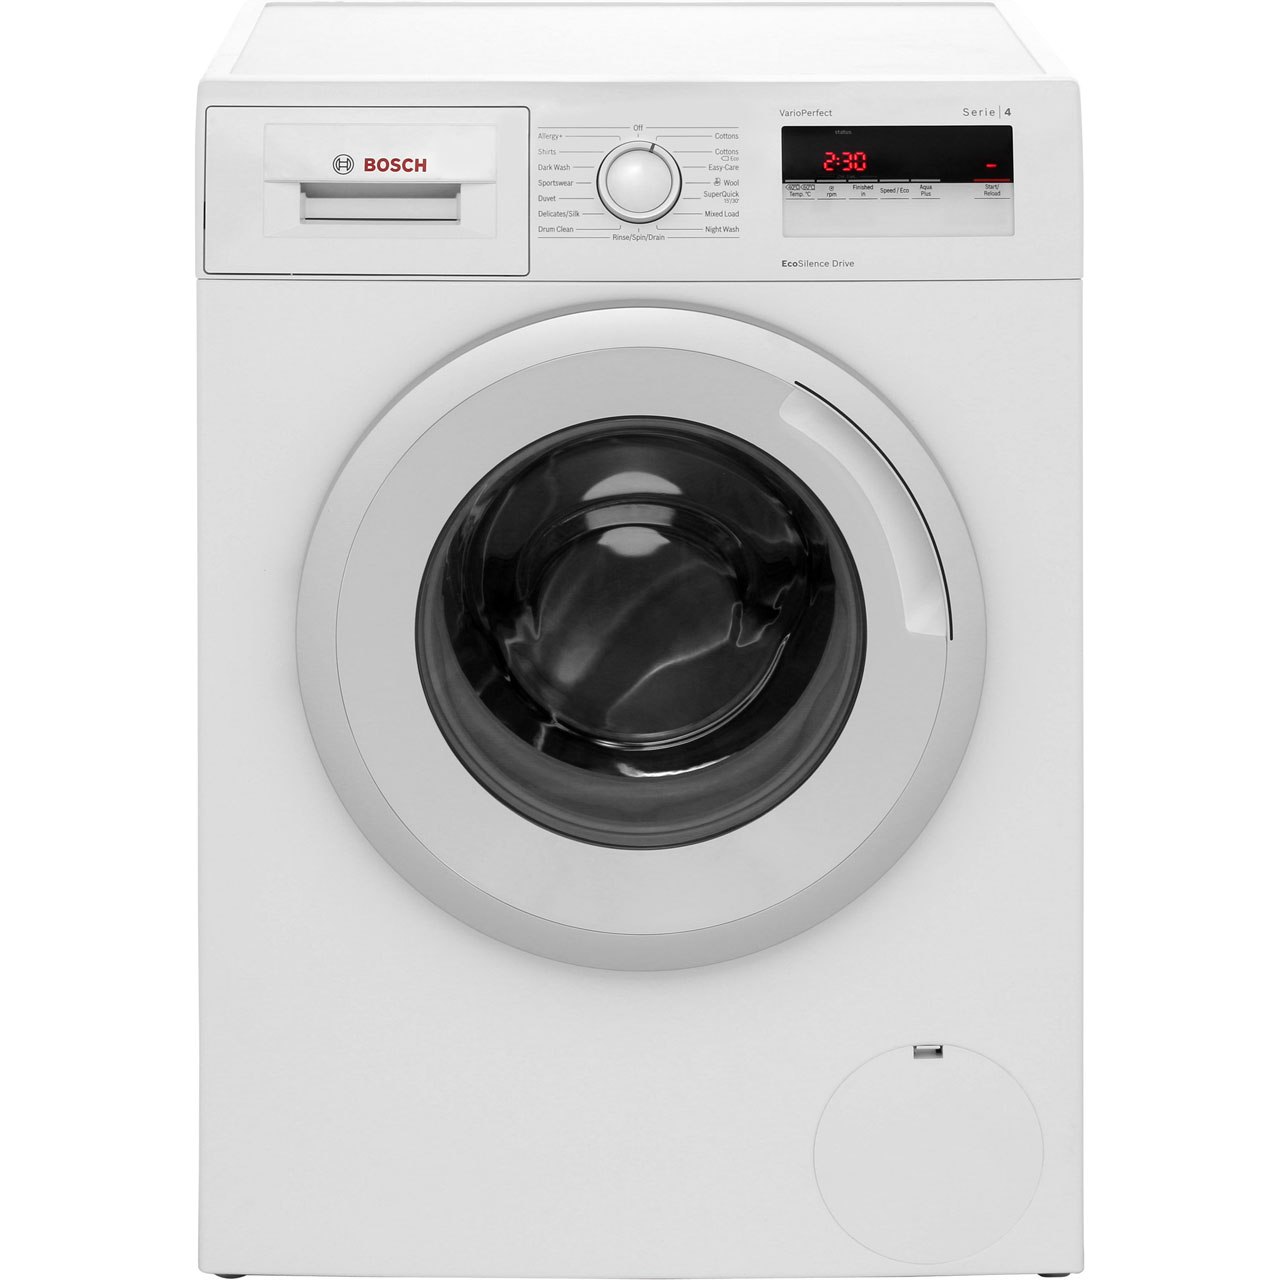 bosch wan24100gb serie 4 a 7kg 1200 rpm washing machine white new 748354456783 ebay. Black Bedroom Furniture Sets. Home Design Ideas